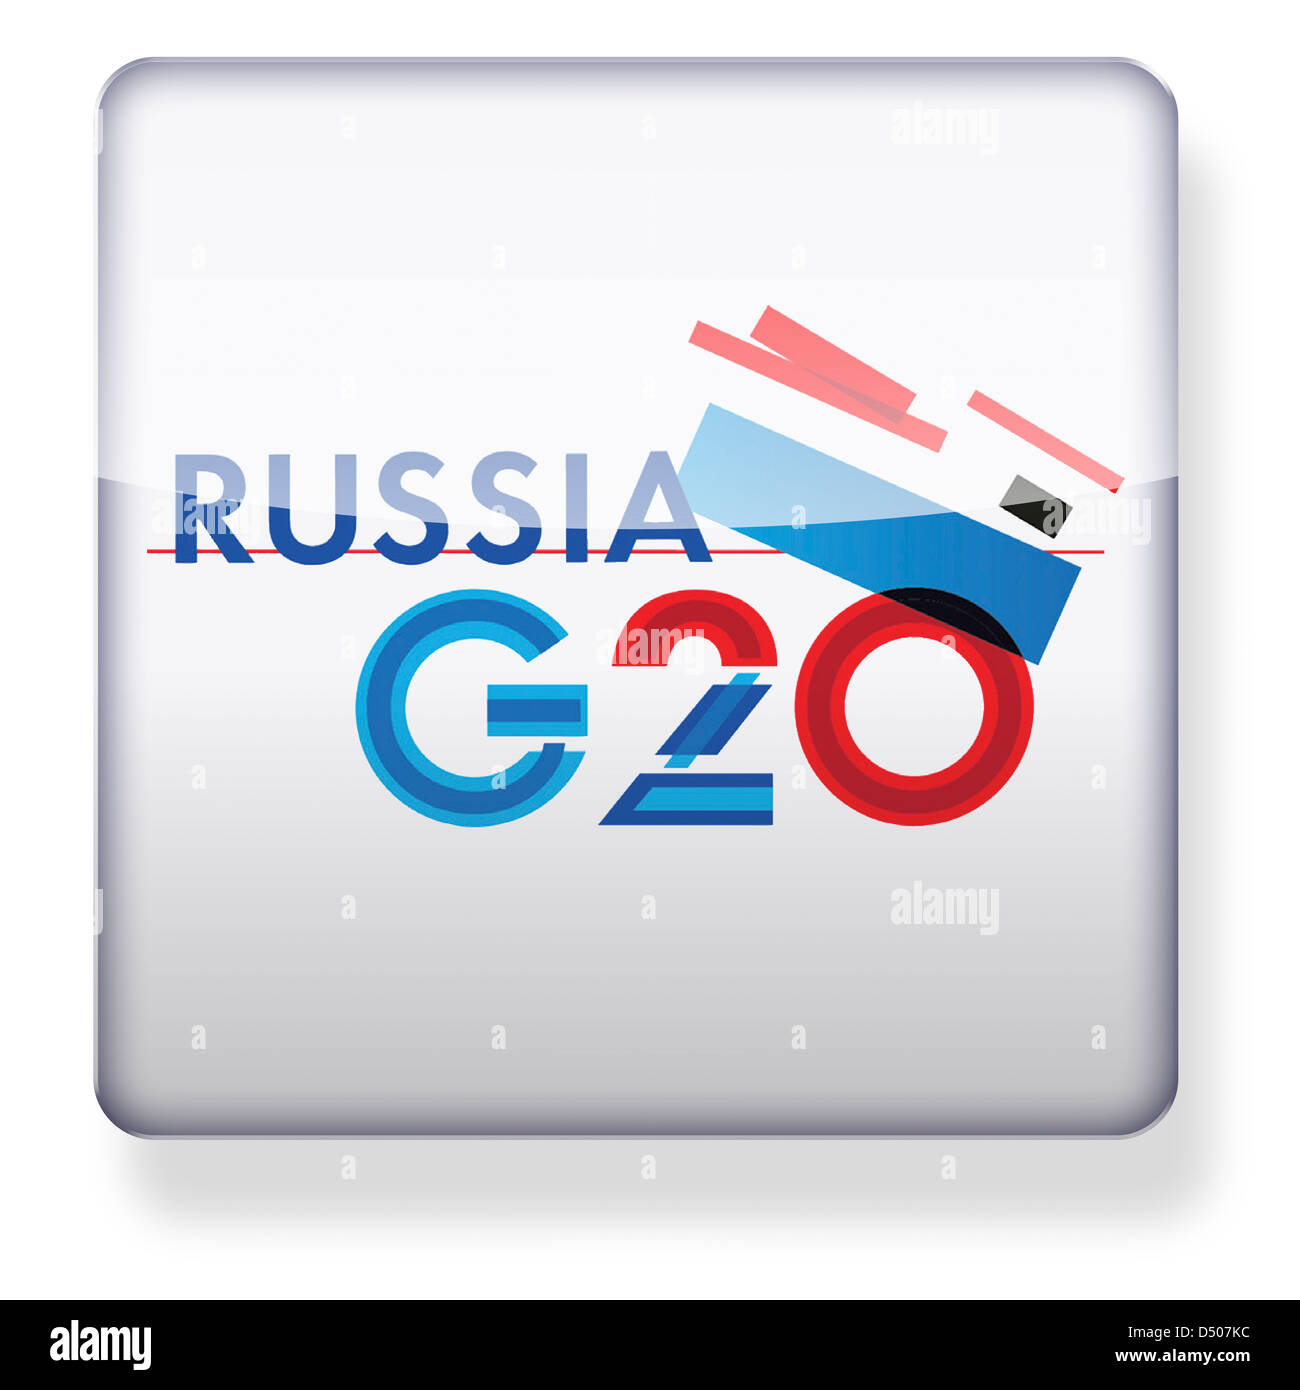 Russia G20 logo as an app icon. Clipping path included. - Stock Image